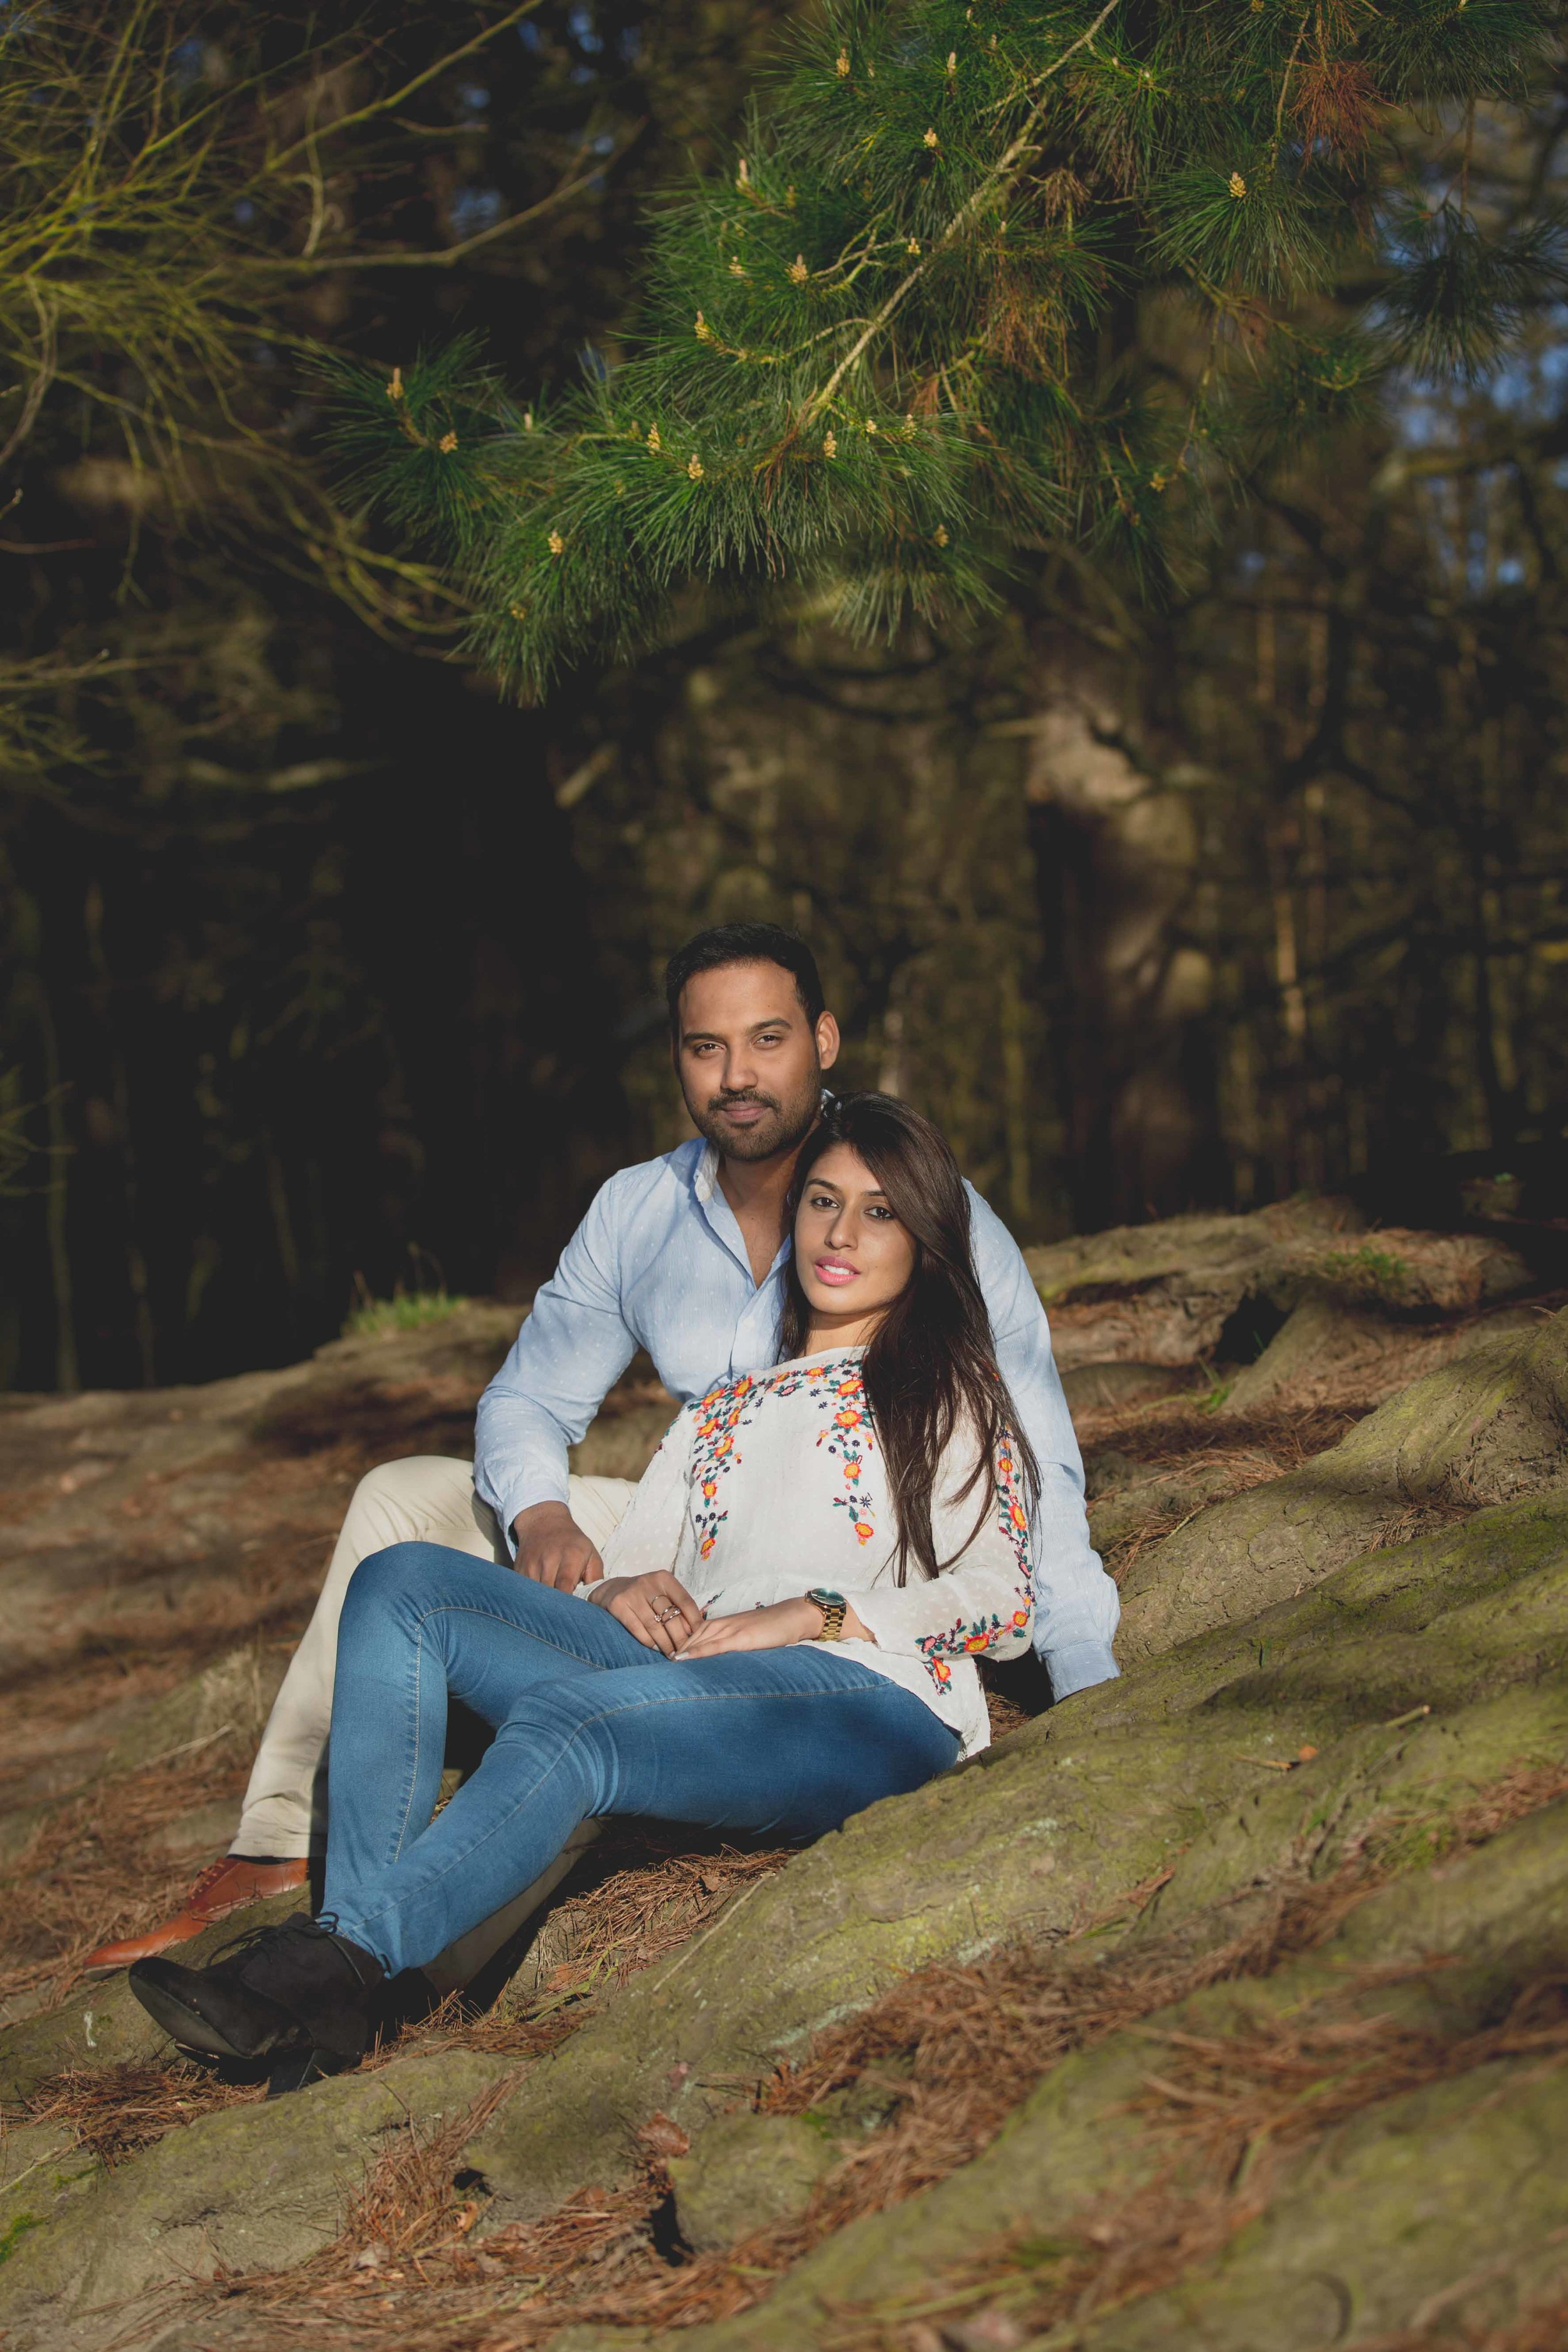 Virginia-waters-windsor-pre-wedding-engagement-shoot-female-asian-wedding-photographer-natalia-smith-photography-19.jpg